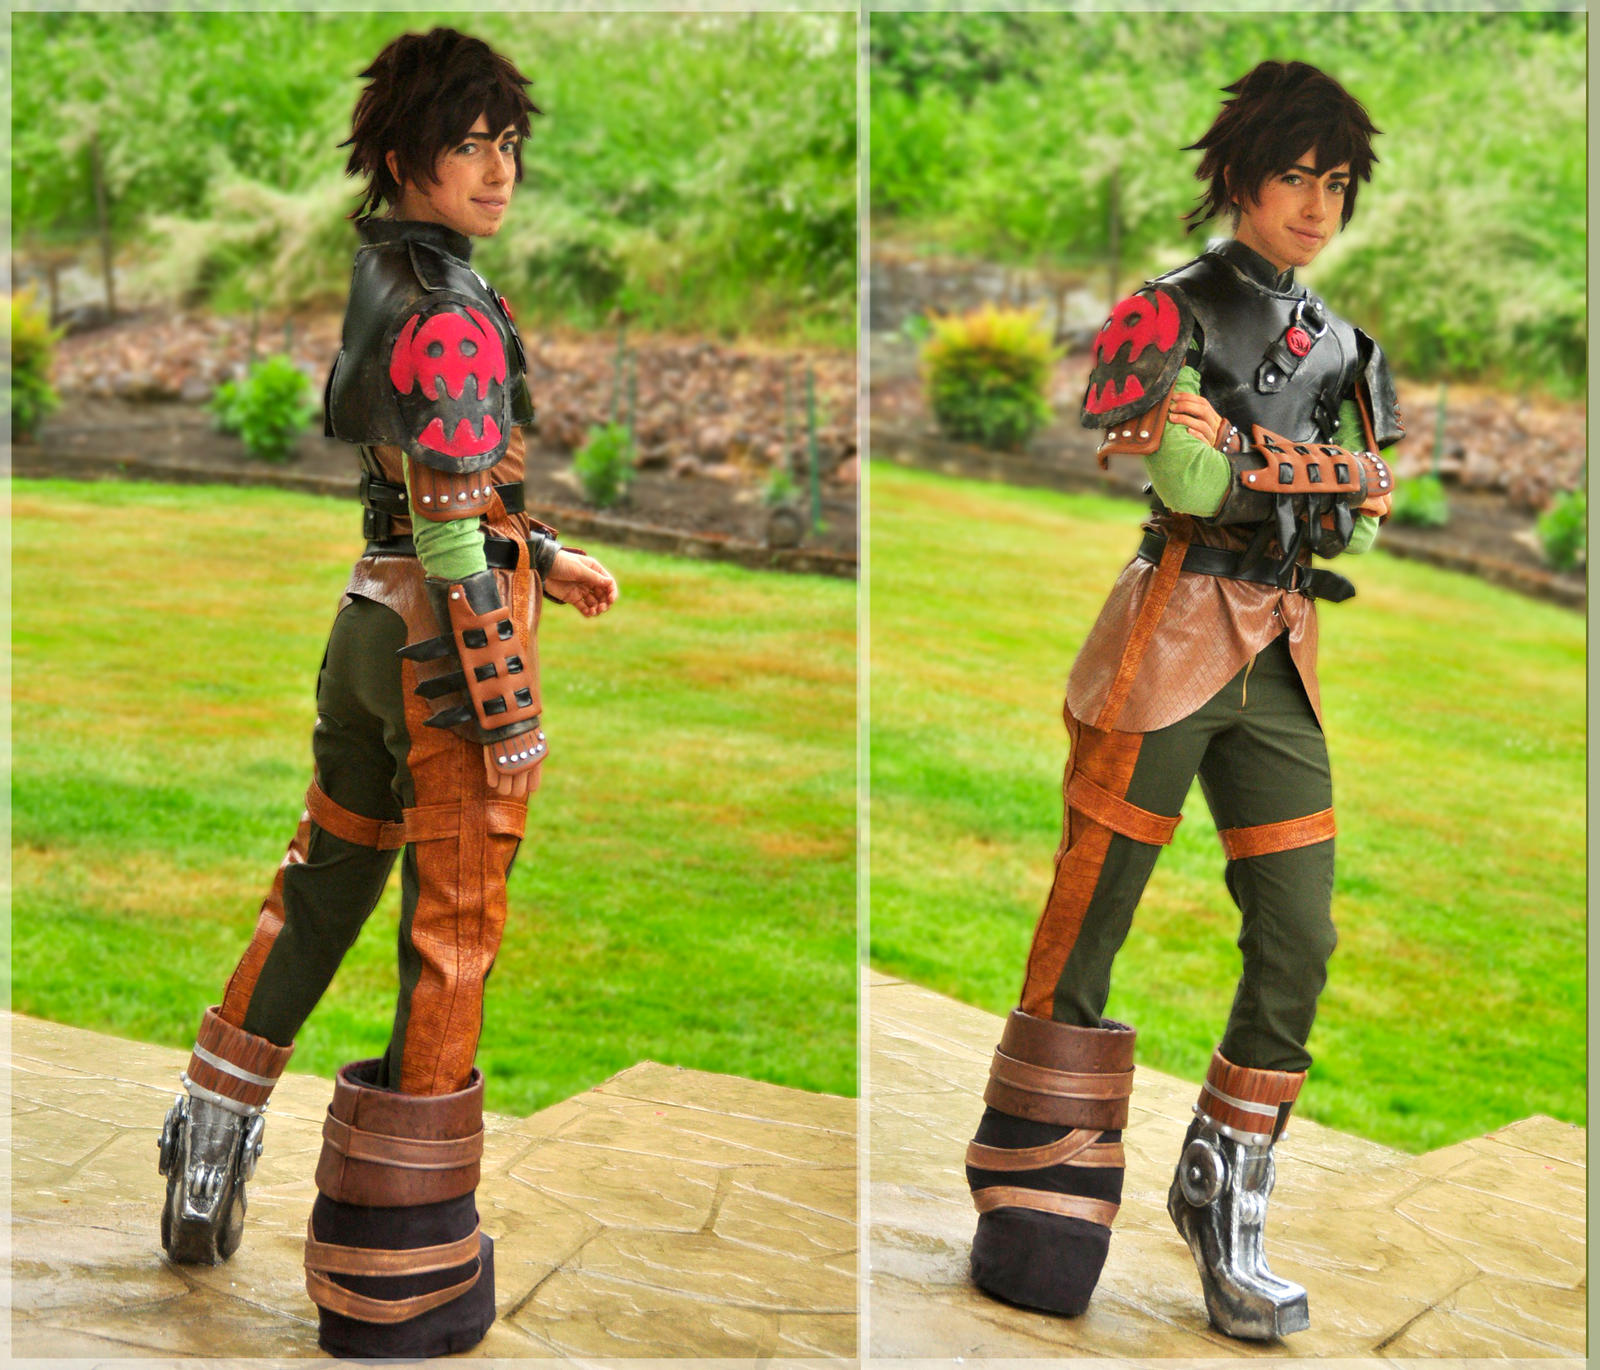 How to train your dragon 2 by theelfinartist on deviantart how to train your dragon 2 by theelfinartist ccuart Gallery